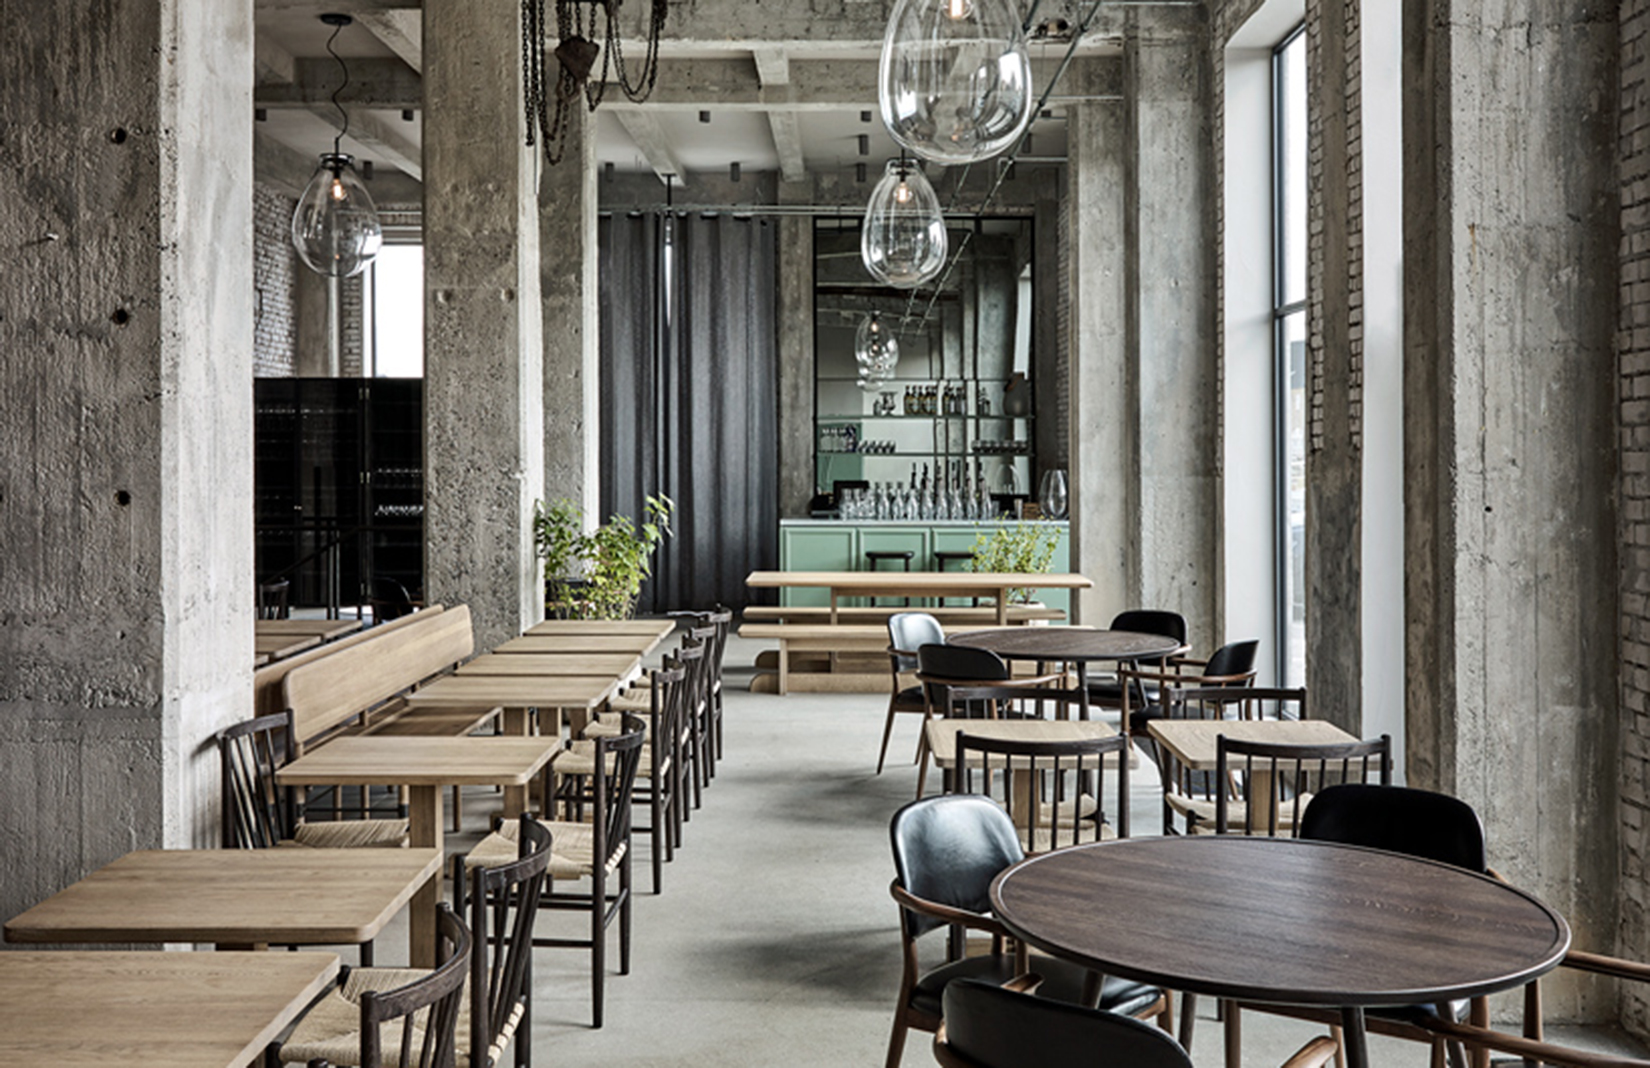 Rene redzepi s new restaurant is a raw industrial